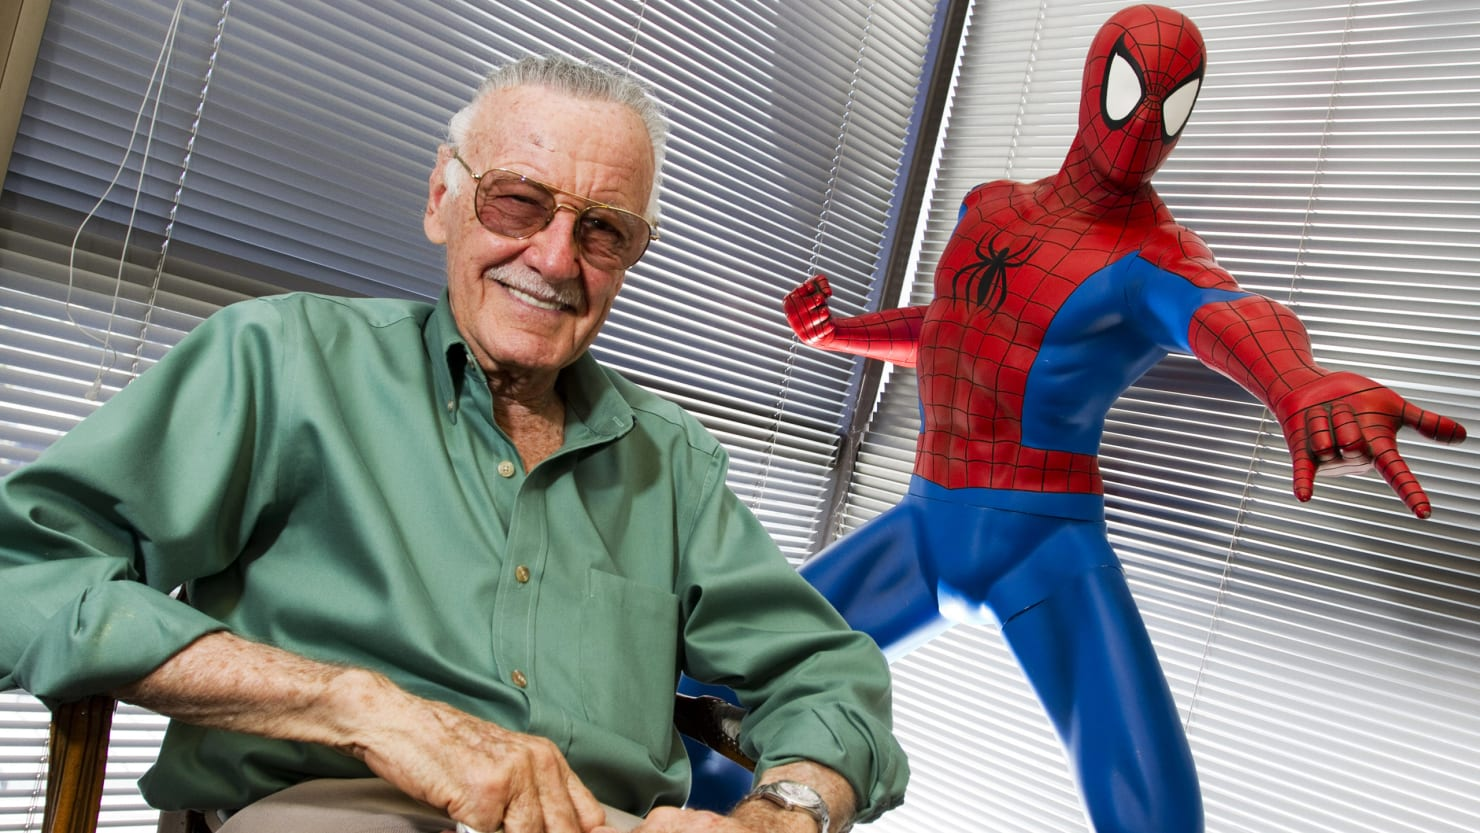 thedailybeast.com - Spencer Ackerman - RIP Stan Lee, The Man Who Sold the World